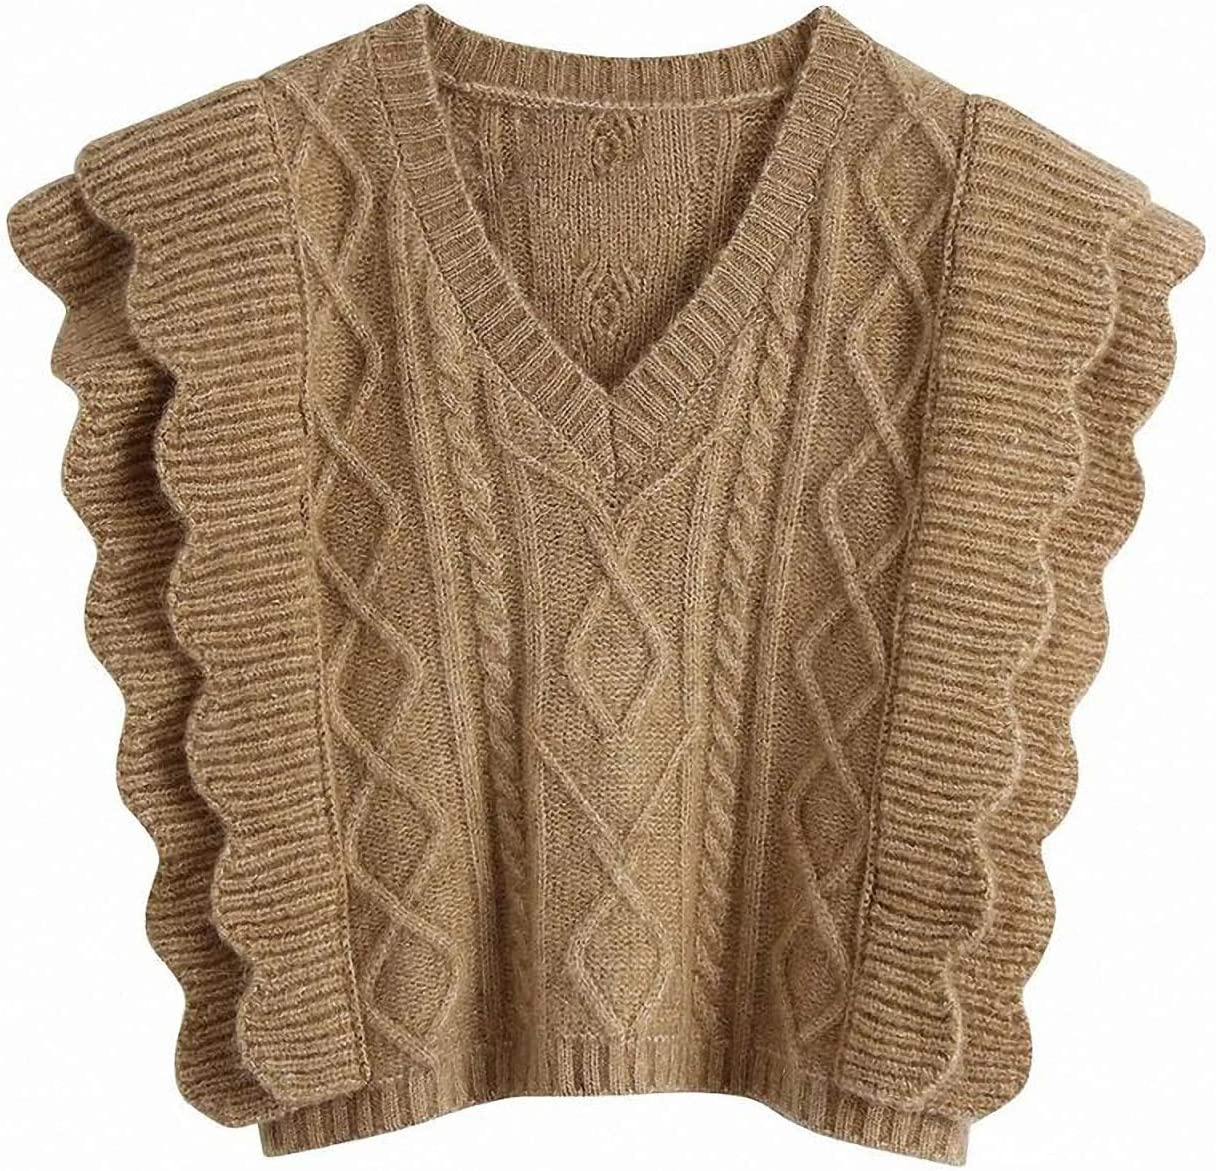 Barsly Fall Winter Women Cable-Knit Vest Sweater V-Neck Waistcoat Ruffle Trim Women Pullover Warm Knitted Tank Tops